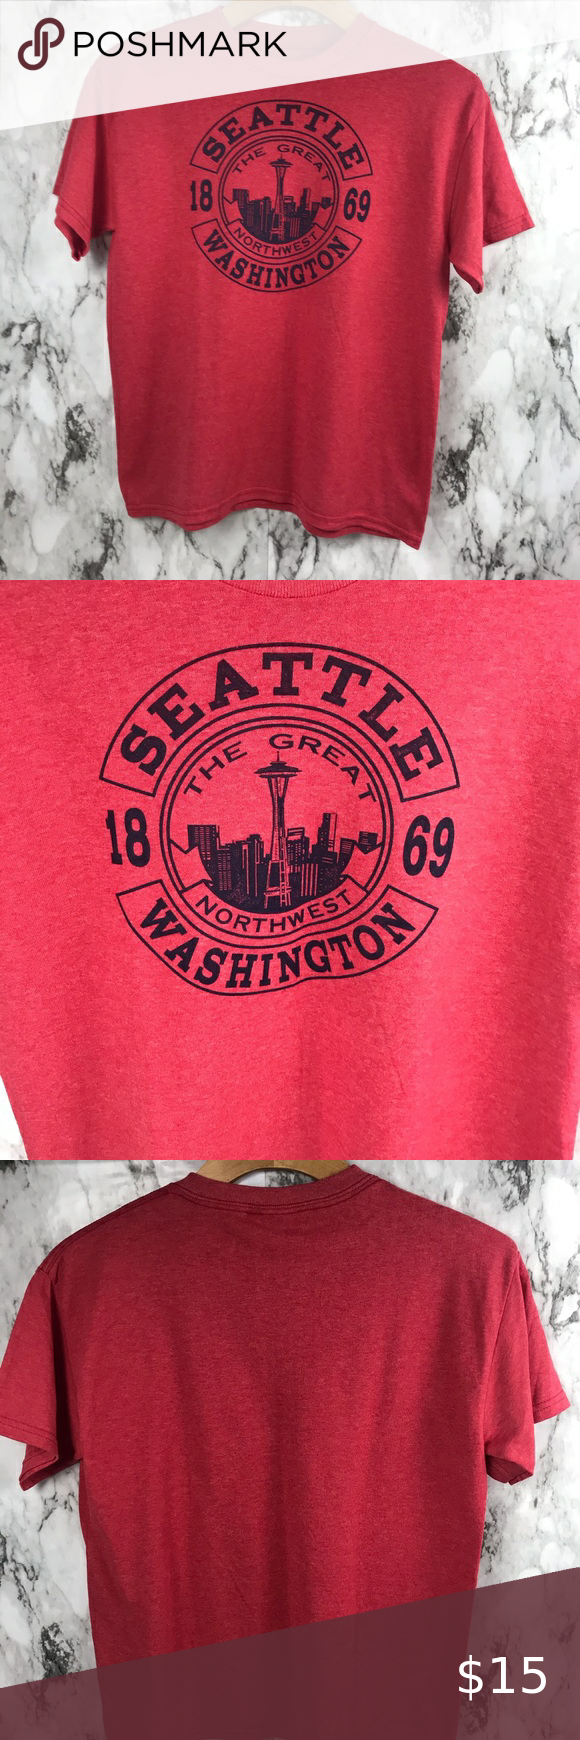 """Seattle Washington Graphic Shirt Top Small Size tag missing but fits a Small Pit to pit 19"""" Length is 23"""" #003 Tops Tees - Short Sleeve"""